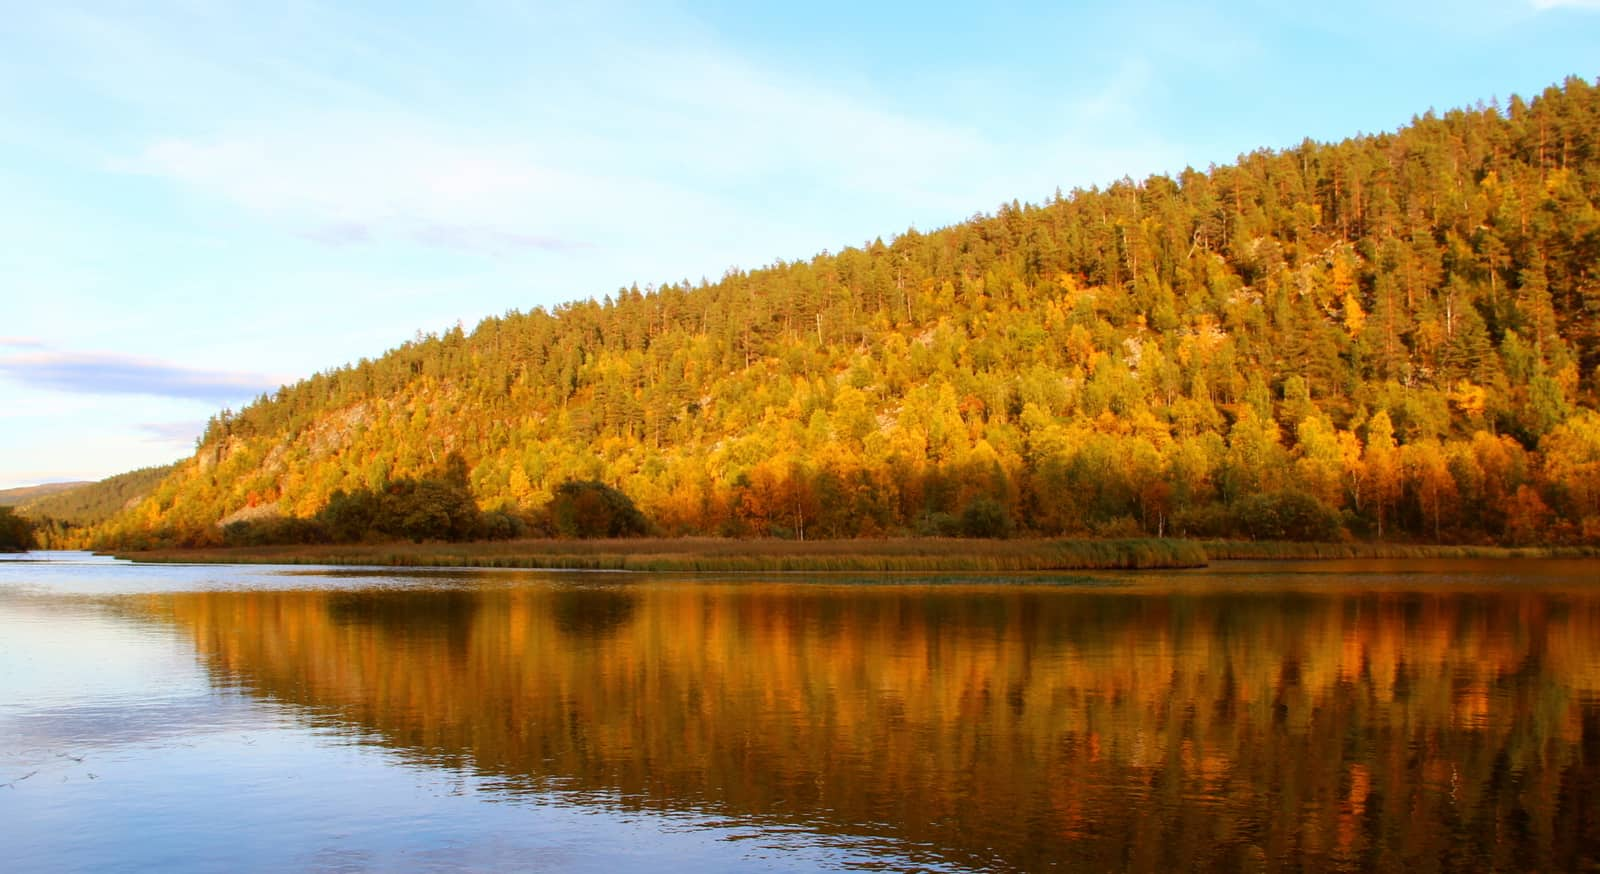 In the fall, the trees of the Lemmenjoki National Park color in beautiful shades of yellow and brown